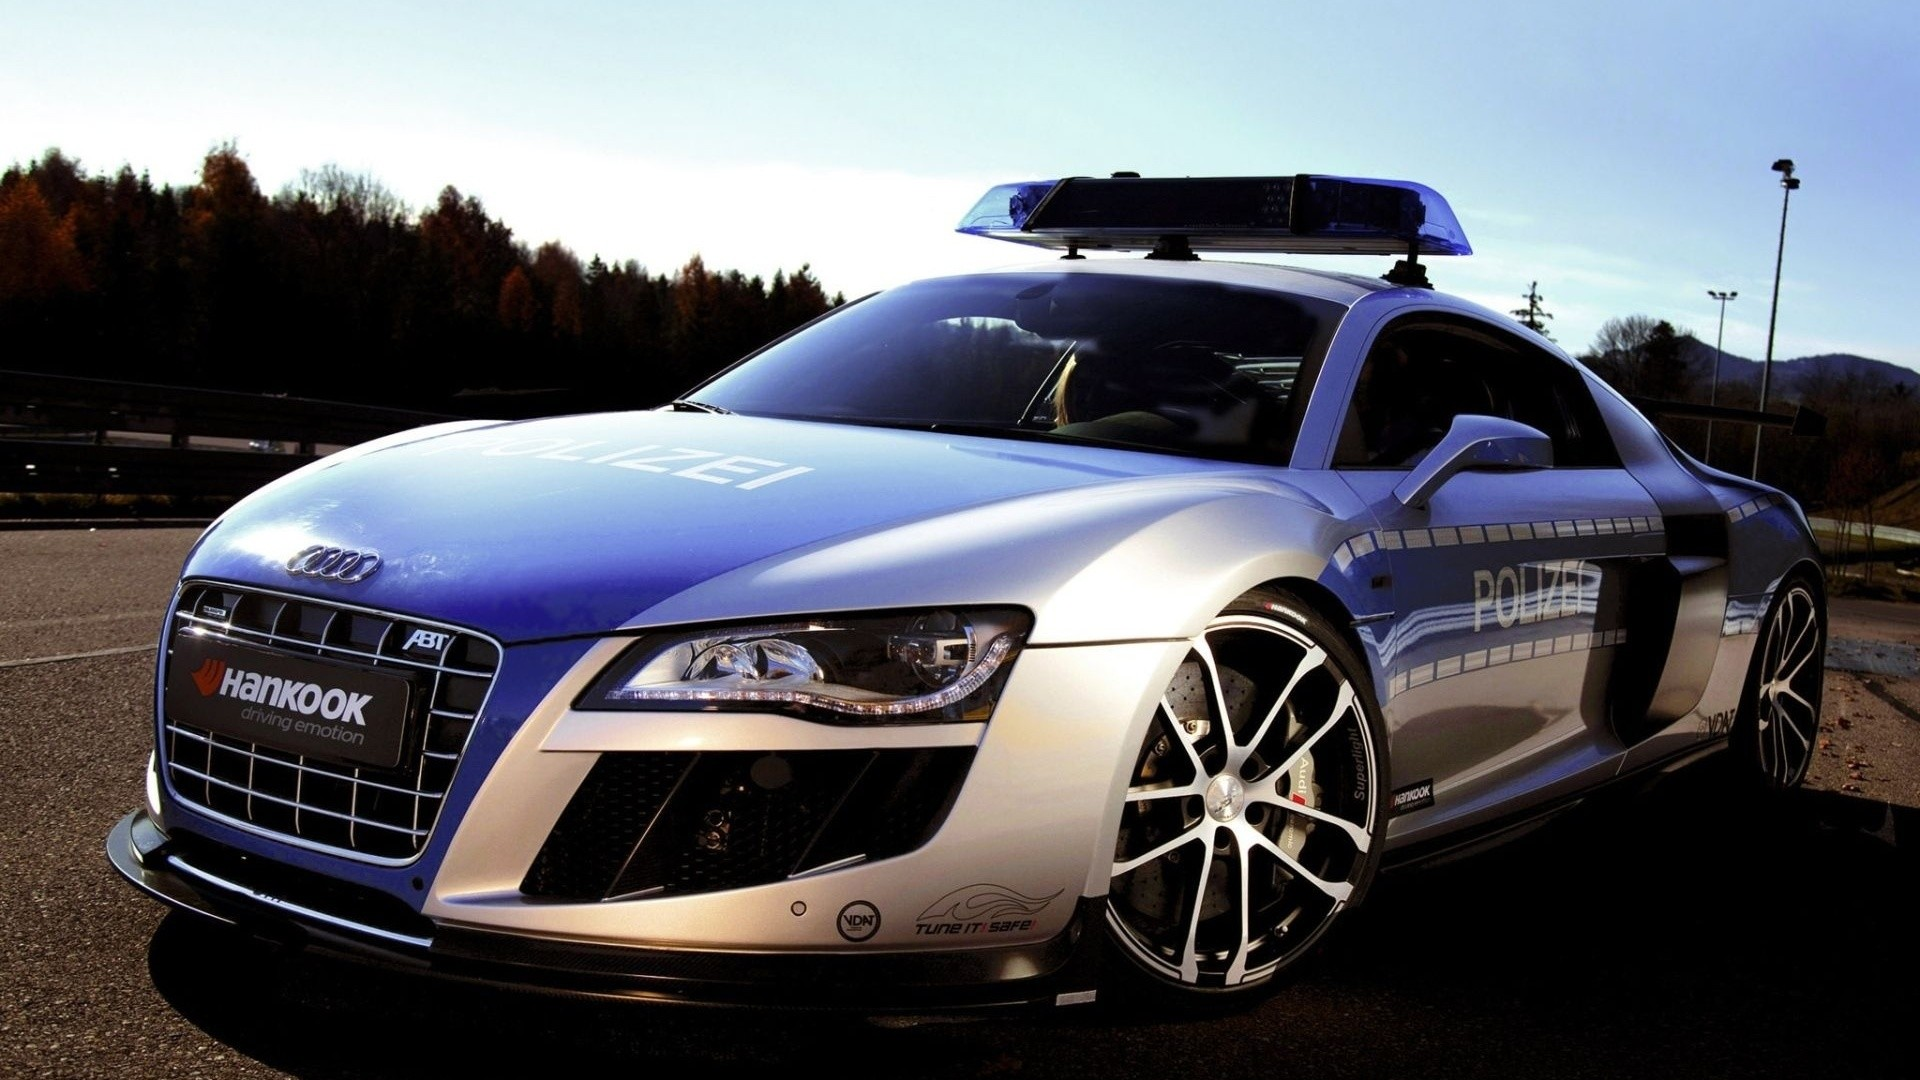 Res: 1920x1080, audi cop car modified sports car hd wallpaper